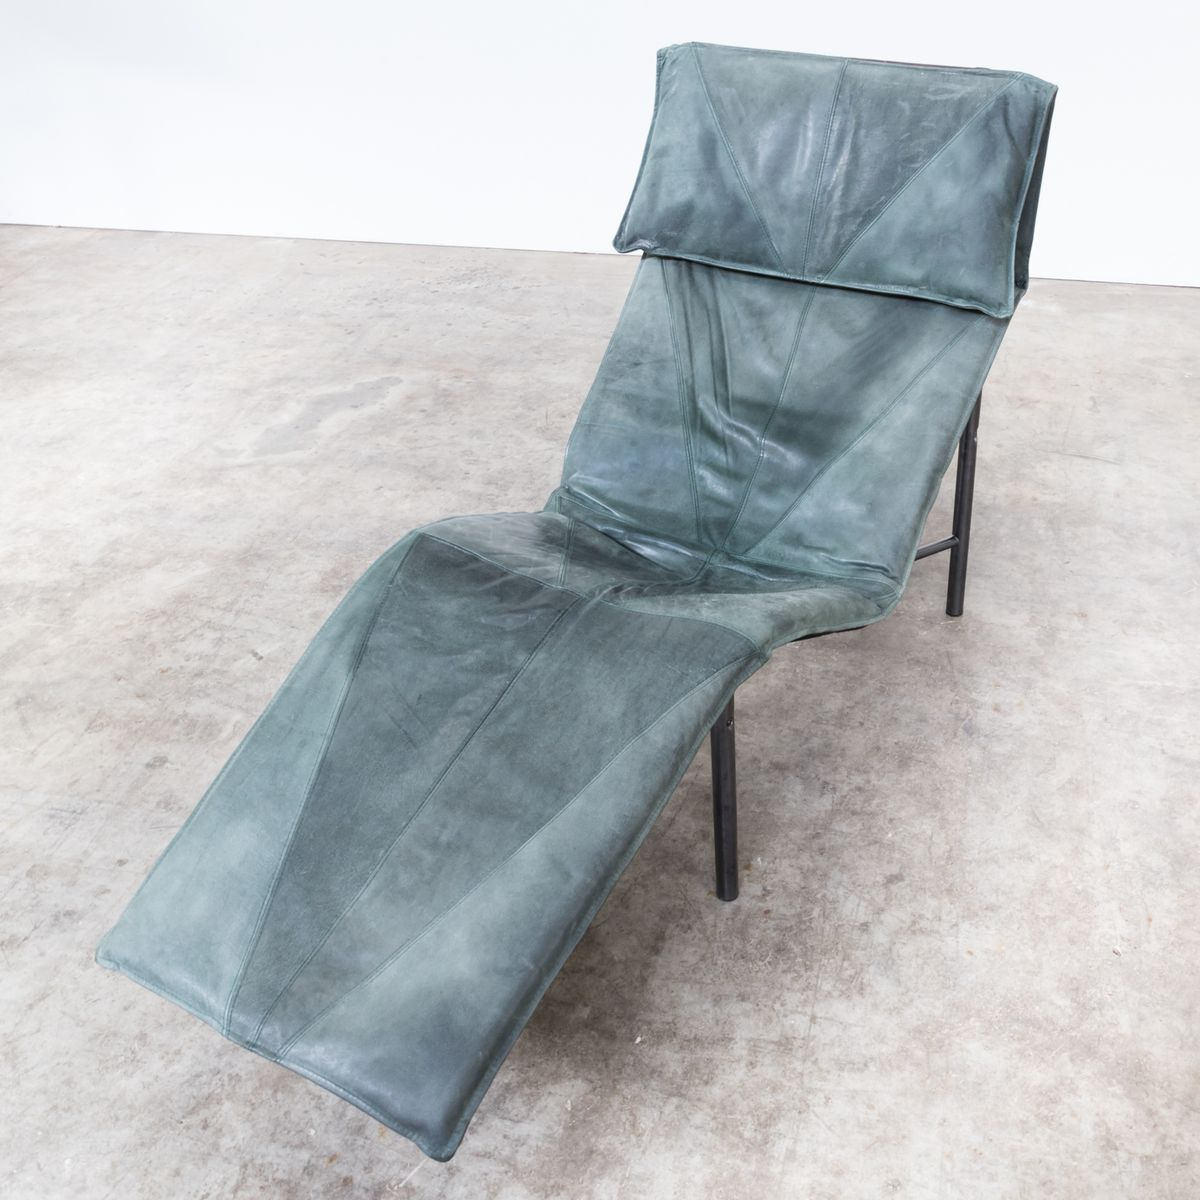 Skye leather lounge chair by tord bj rklund 1980s for for Chaise longue for sale ireland